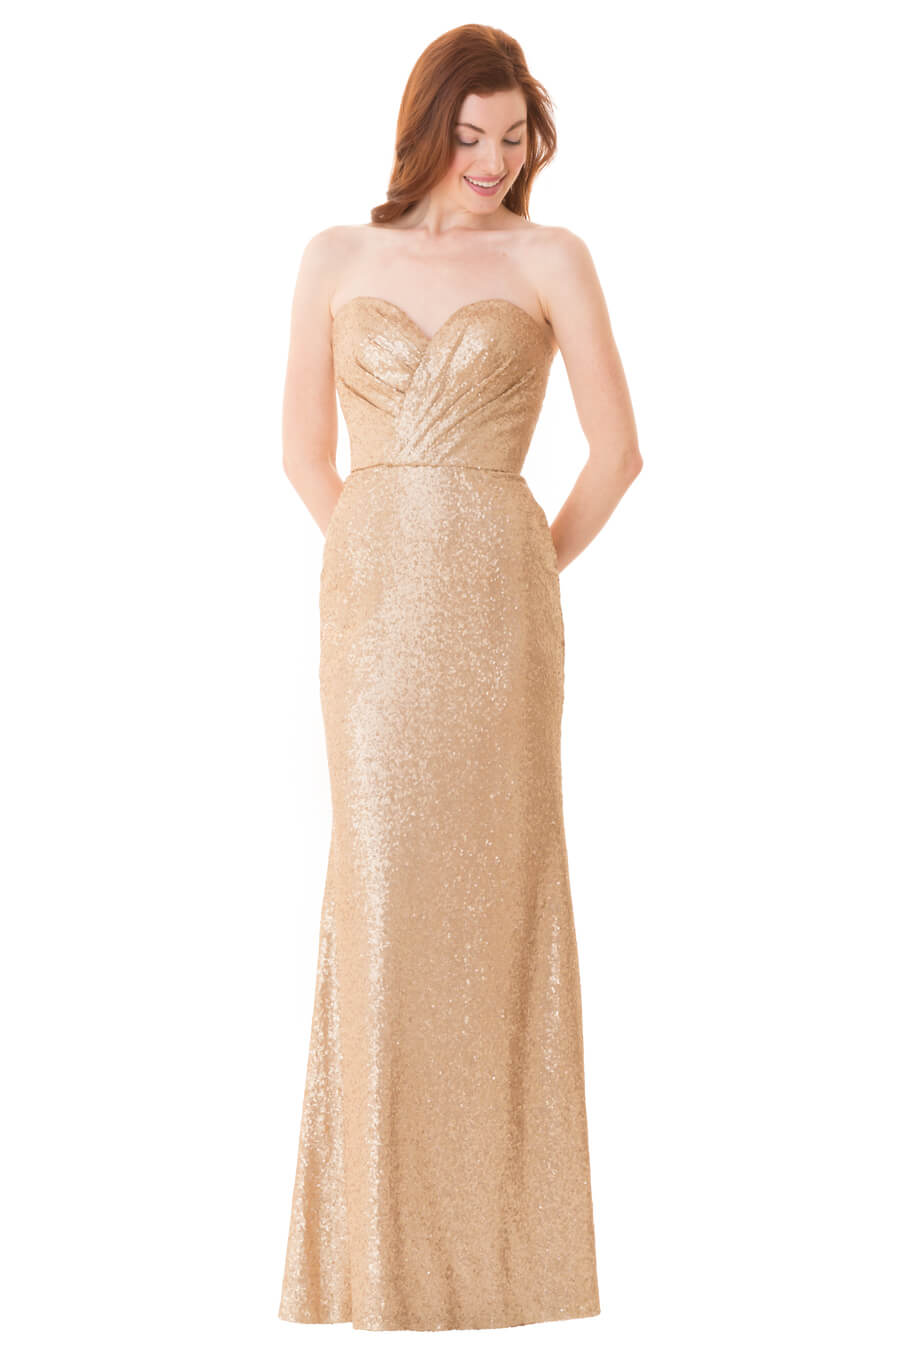 STYLE: 1674 (available short 1674-s) | Bridesmaid Dresses, Evening ...